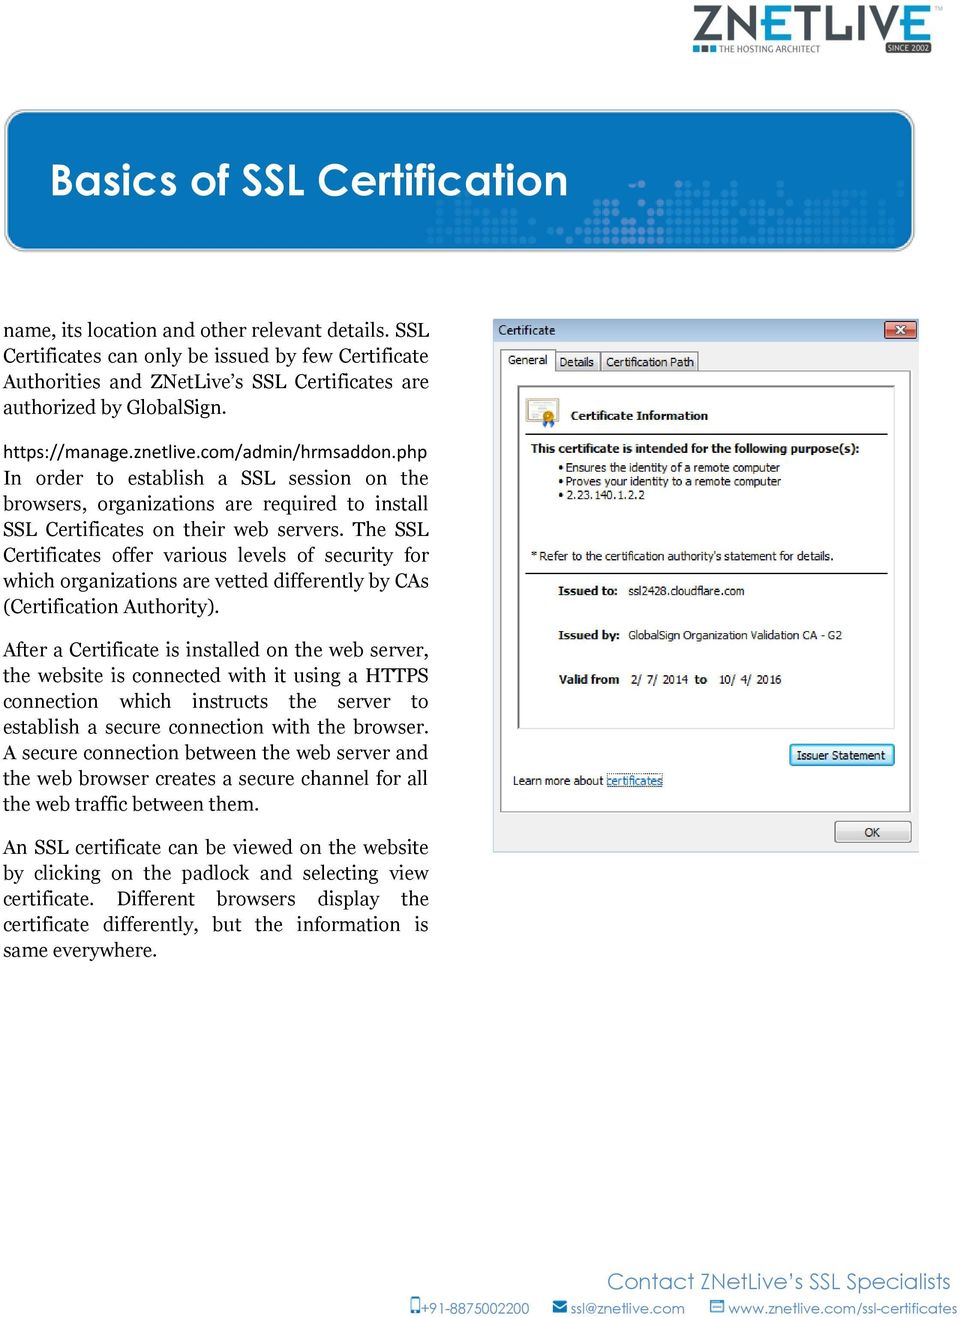 The SSL Certificates offer various levels of security for which organizations are vetted differently by CAs (Certification Authority).